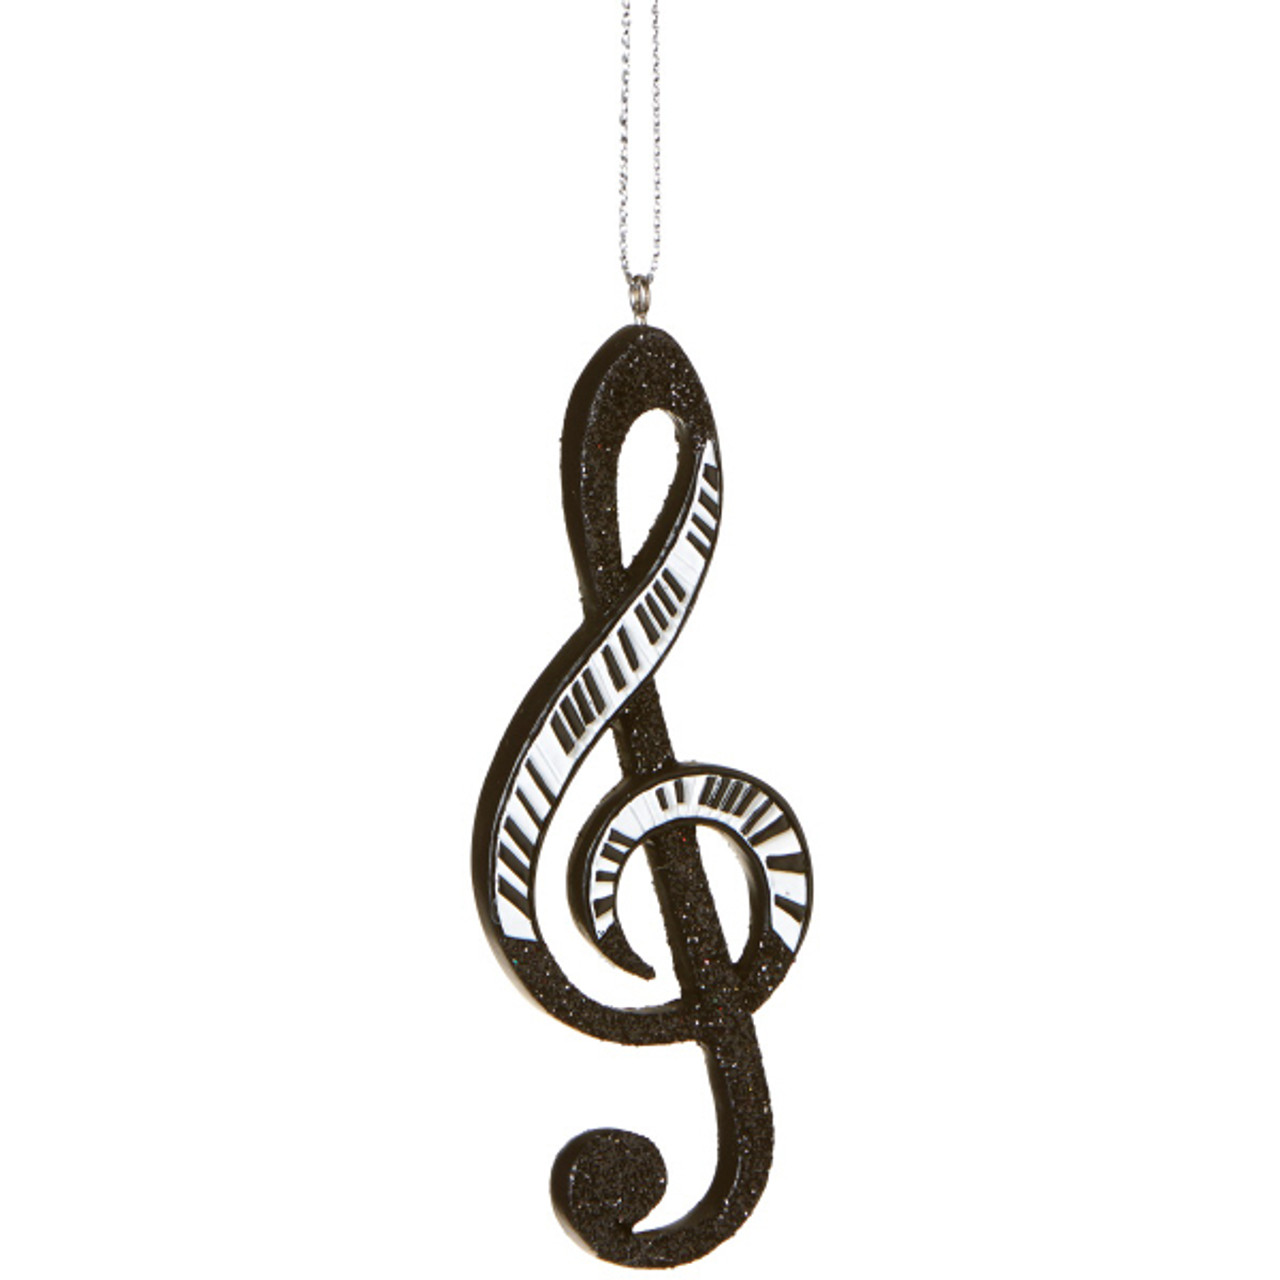 Glamour Time Black White Glittered Piano Treble Clef Musical Note